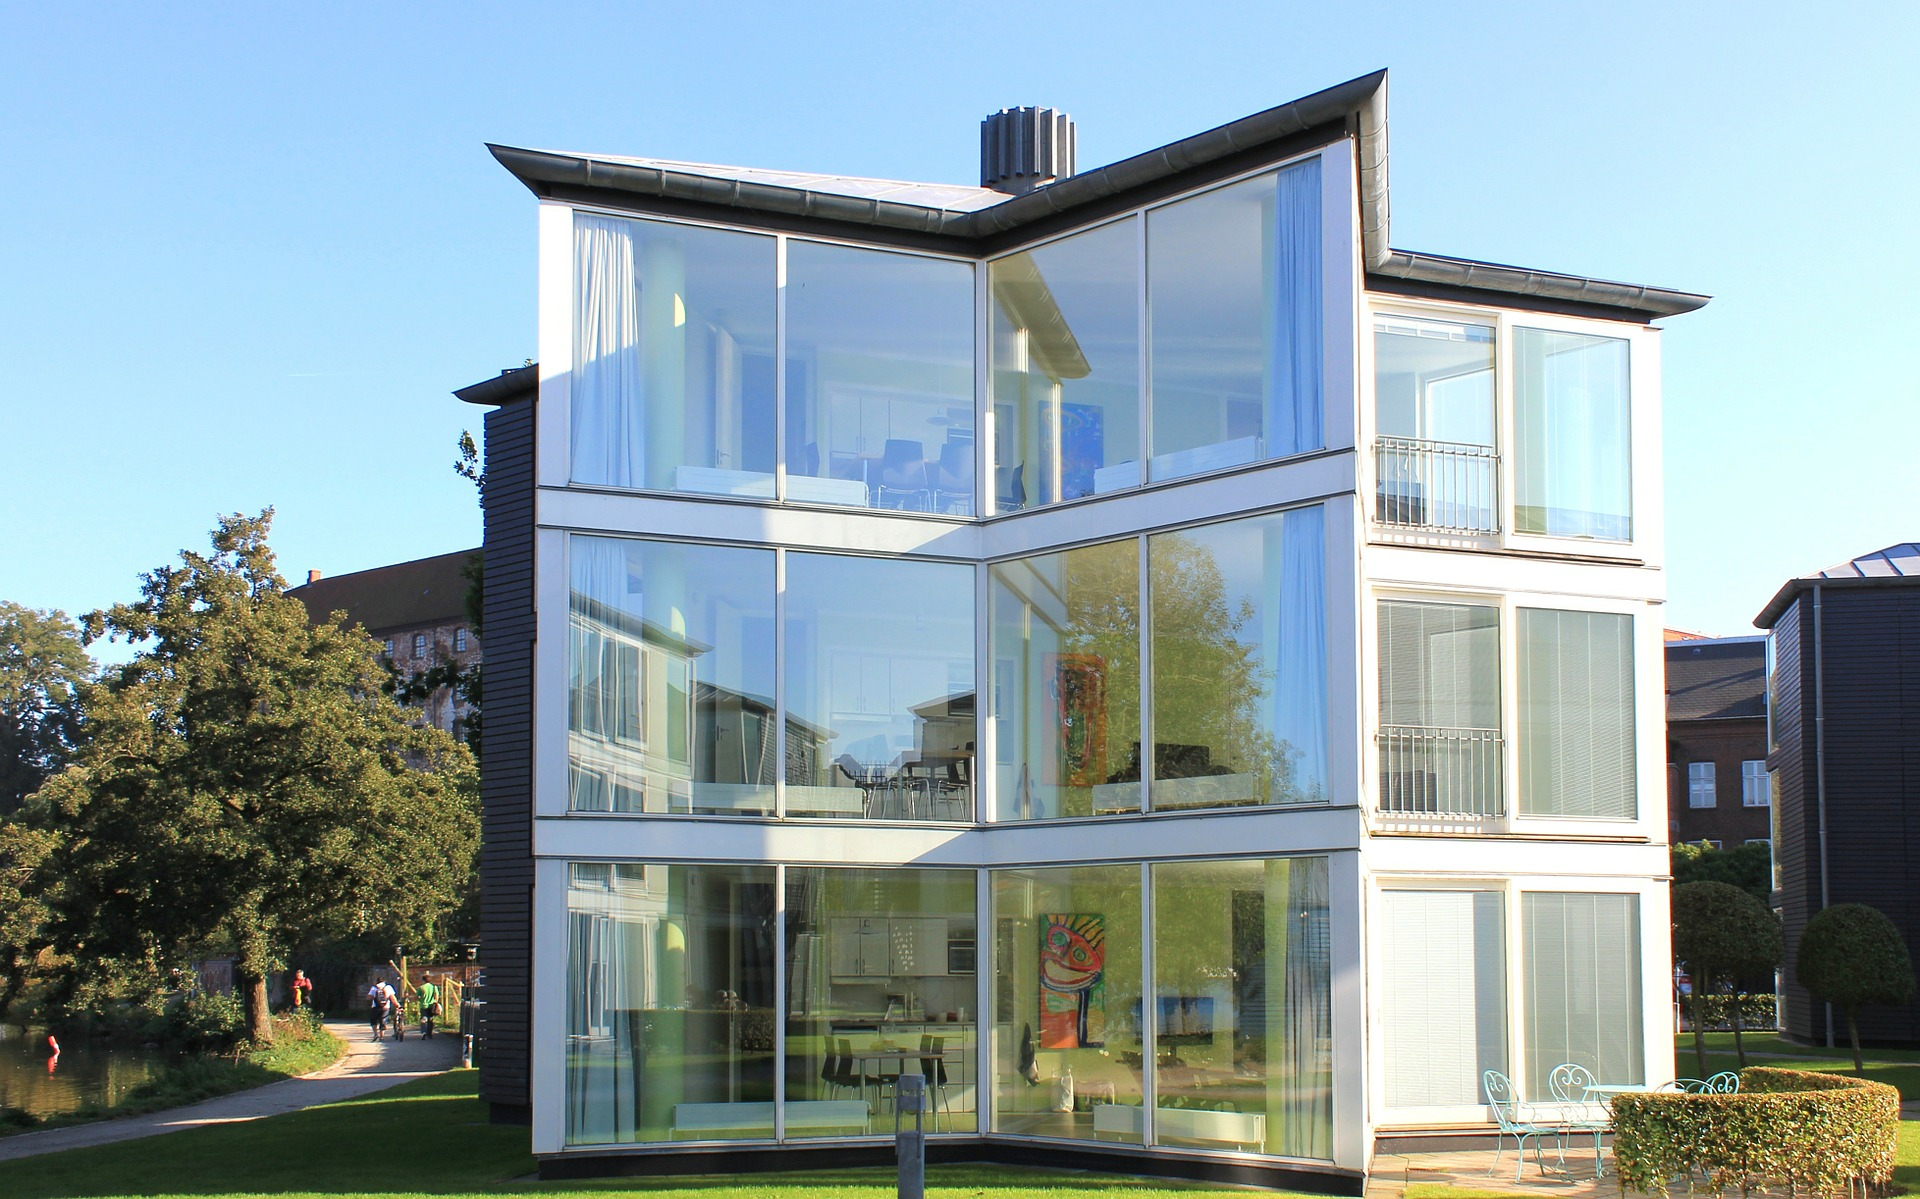 glass-house-76934_1920